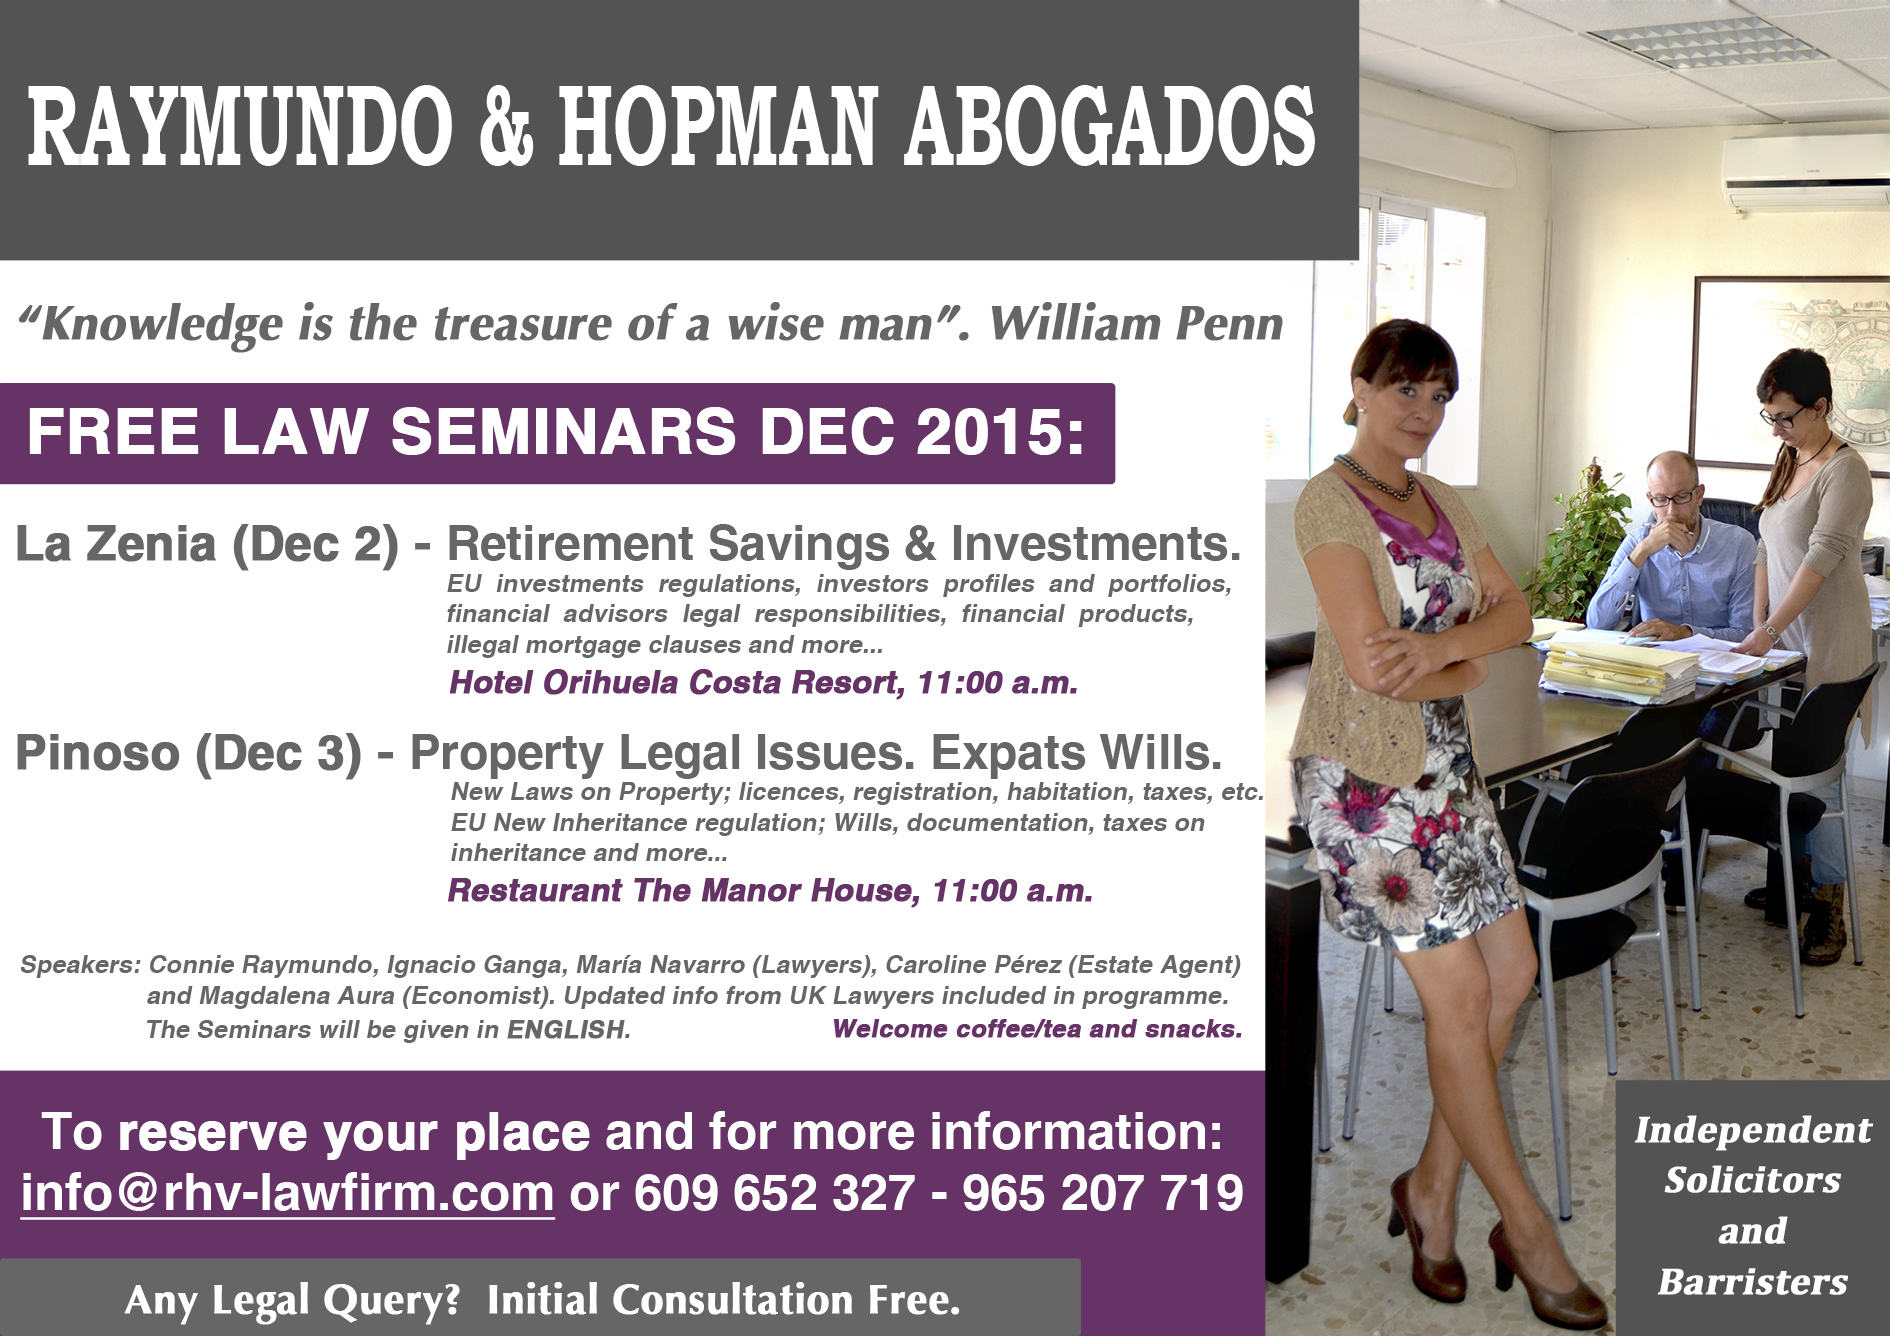 Seminar Investments Conveyancing Property Inheritance Wills Litigation - PINOSO